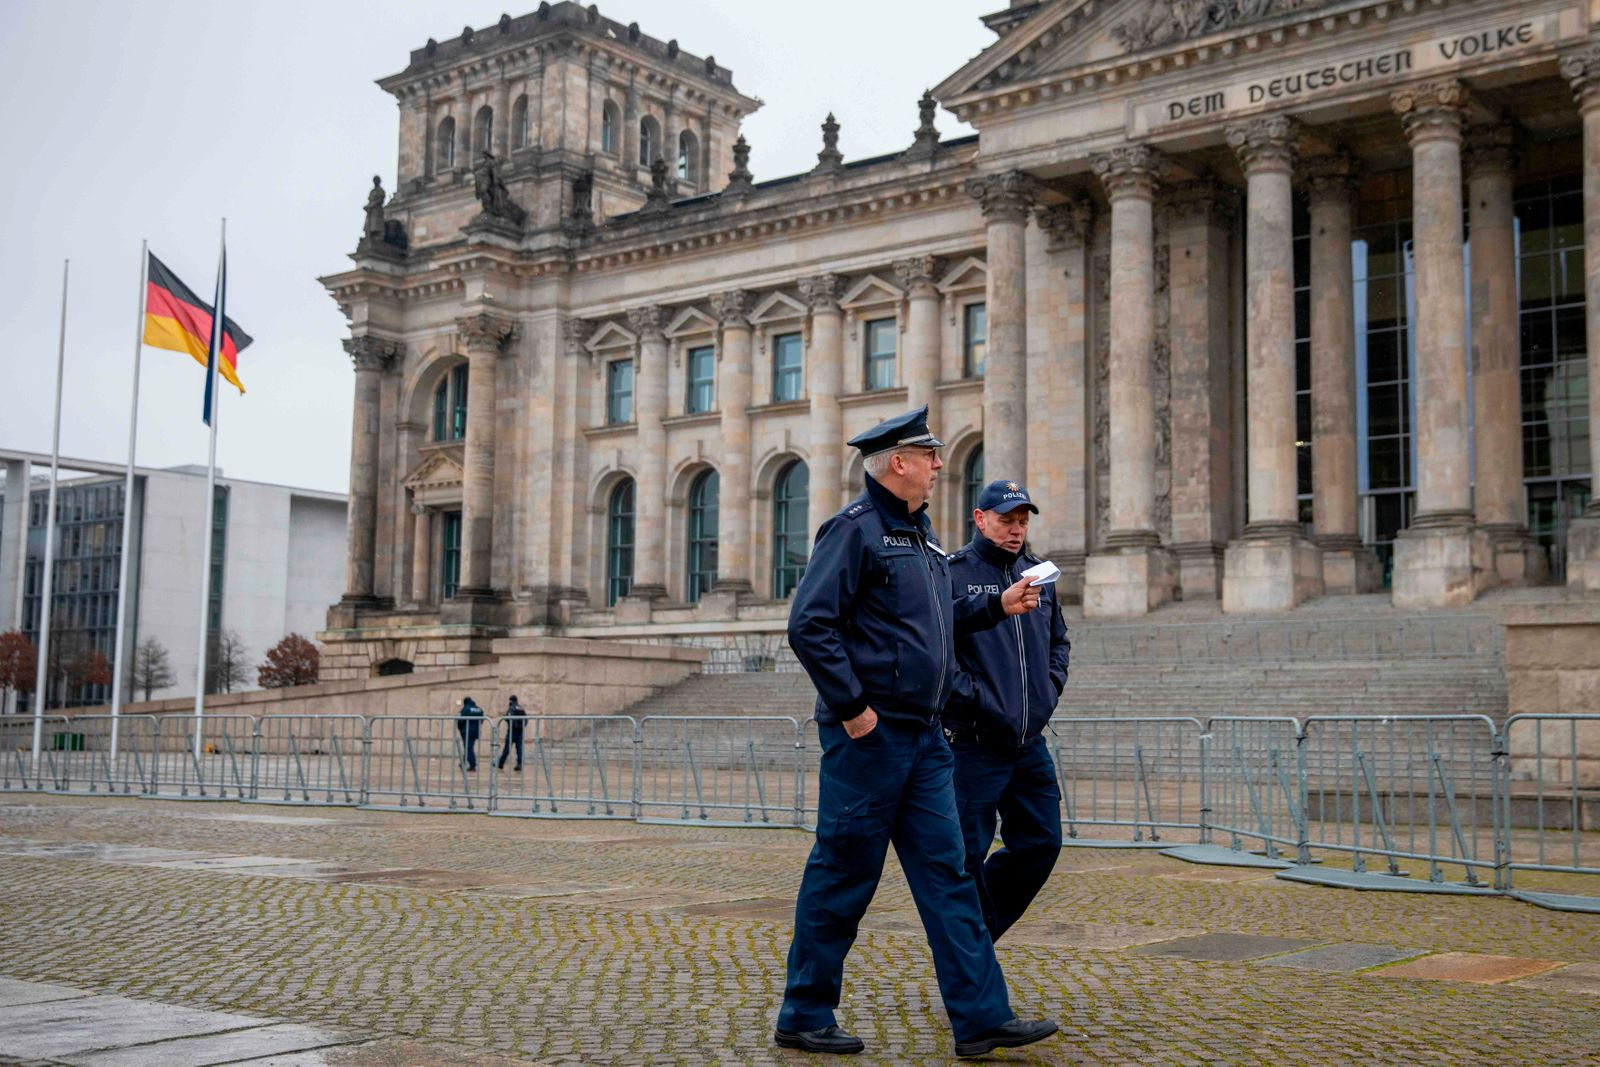 GERMANY-US-UNREST-PARLIAMENT